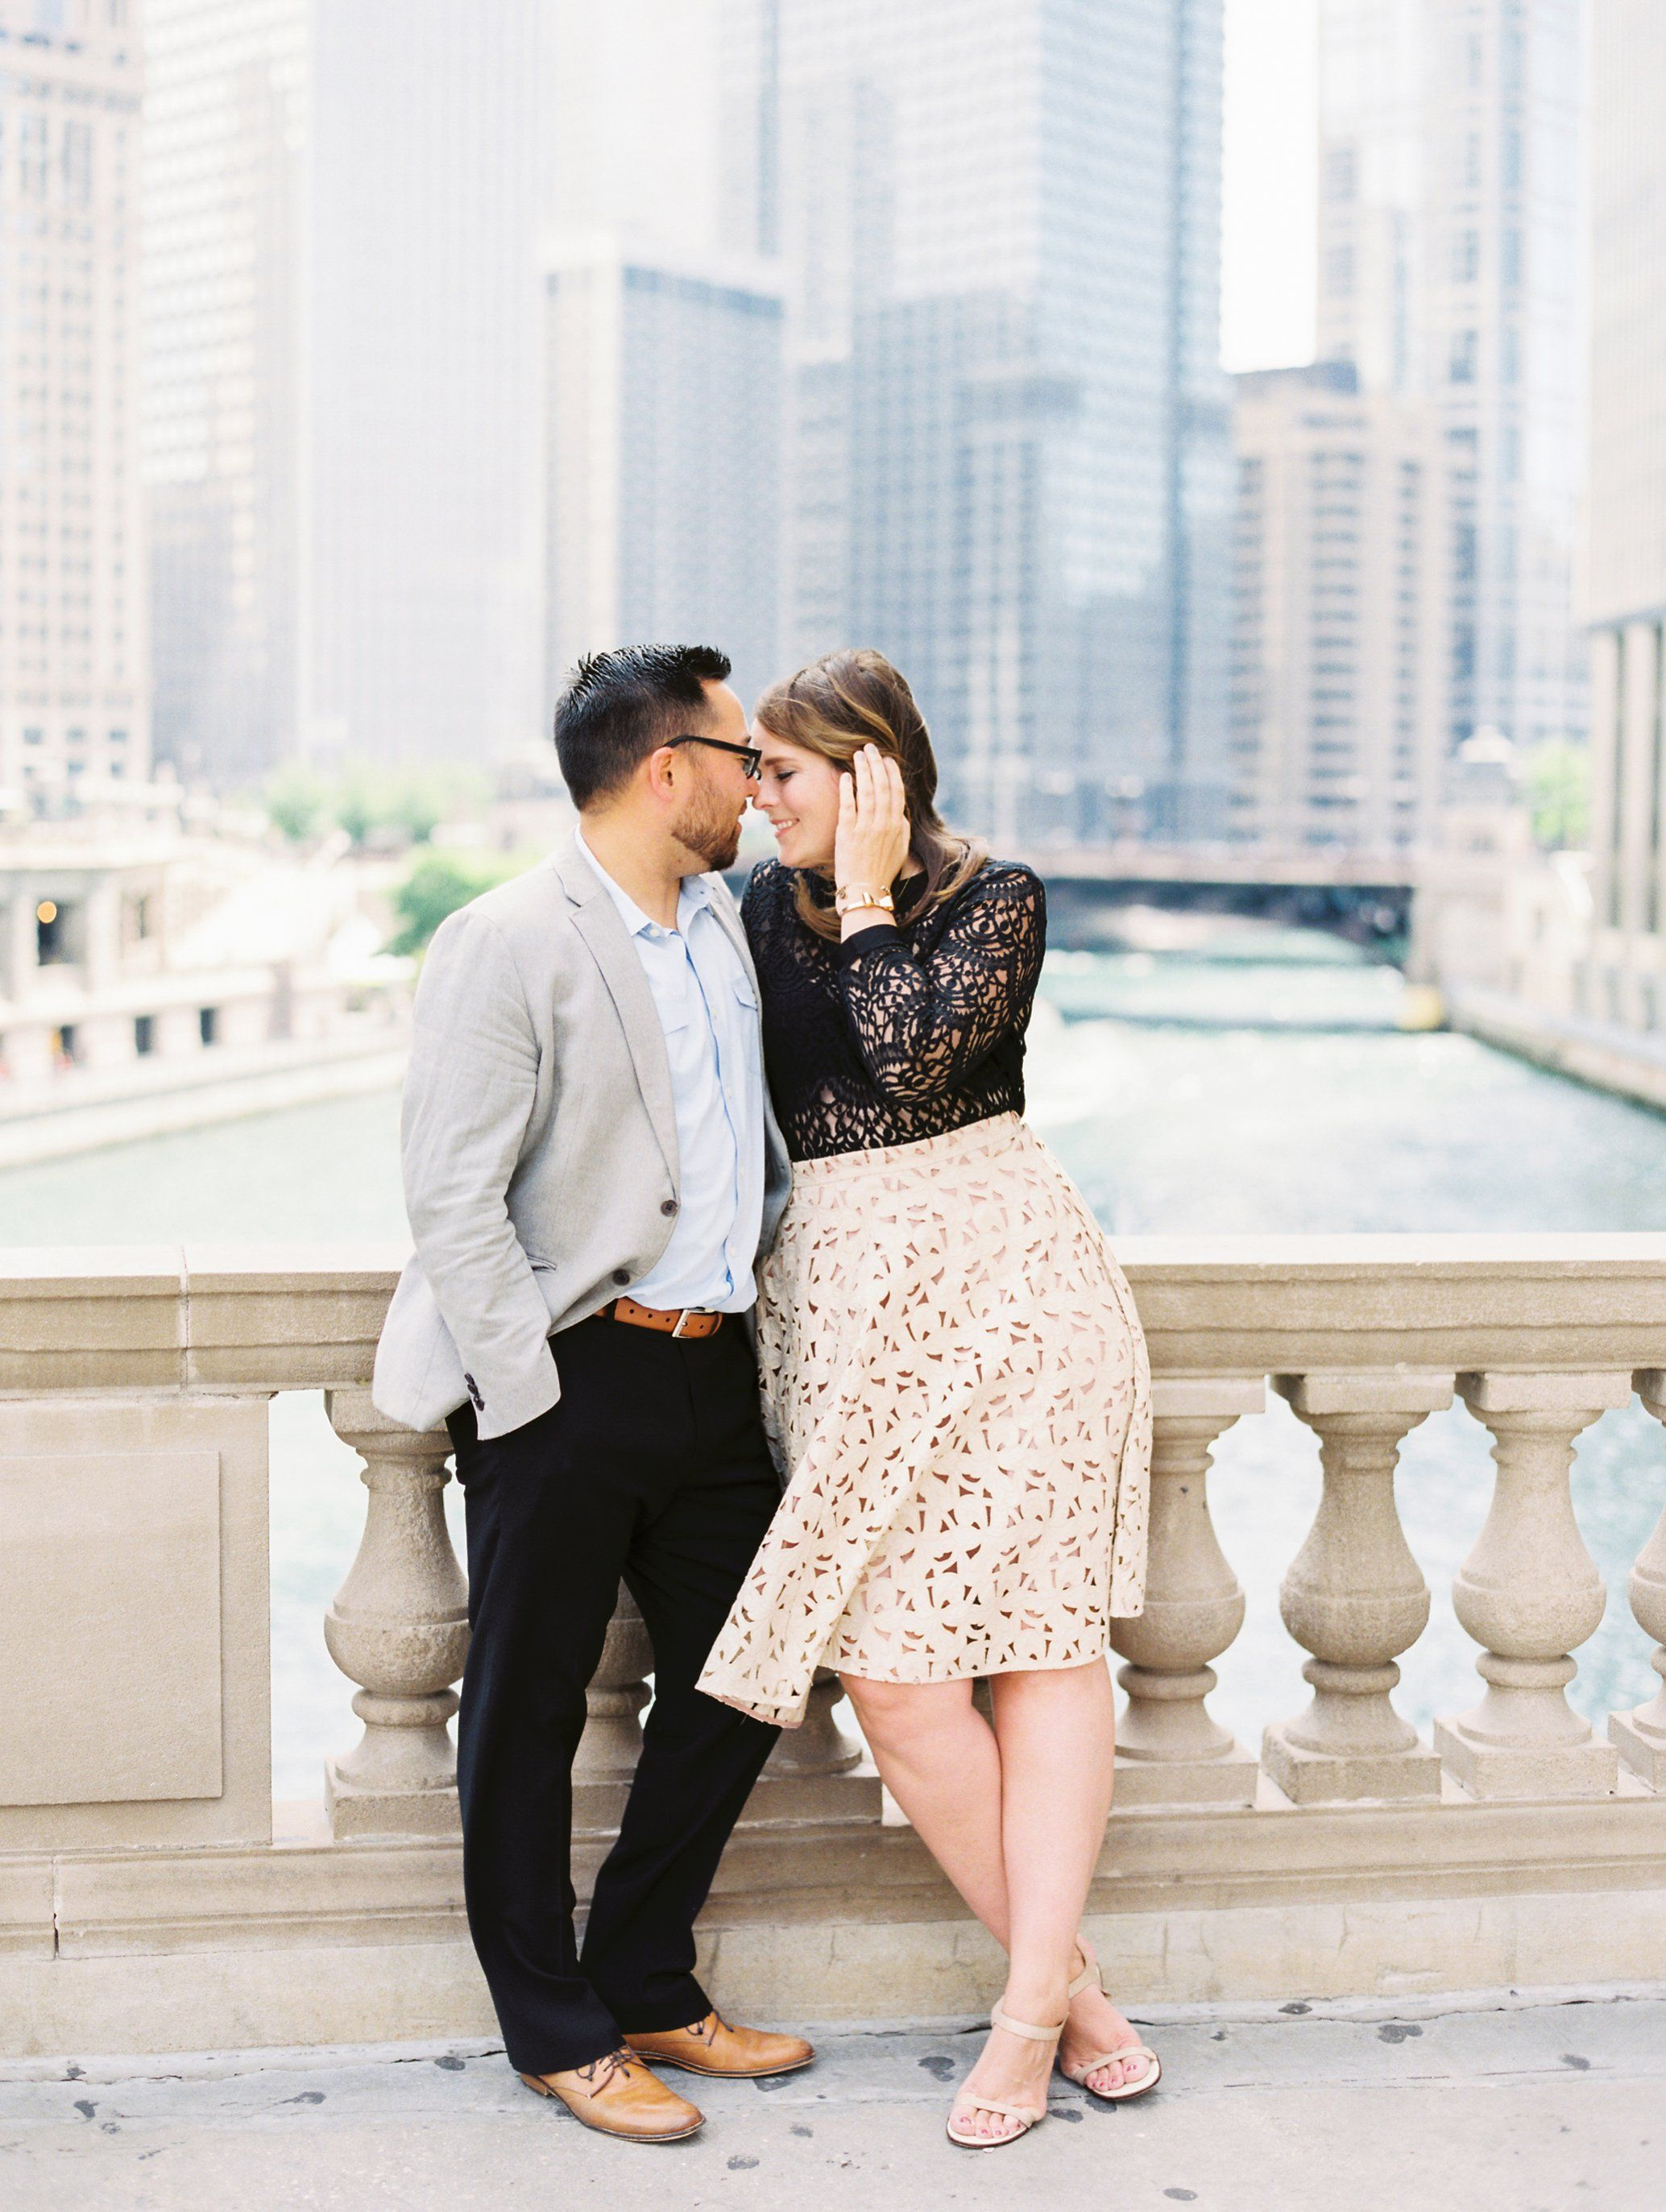 Chicago Engagement Photos Chicago Wedding Photographer Best Photography Wedding Photographer Chicago Chicago Engagement Photos Engagement Photo Outfits